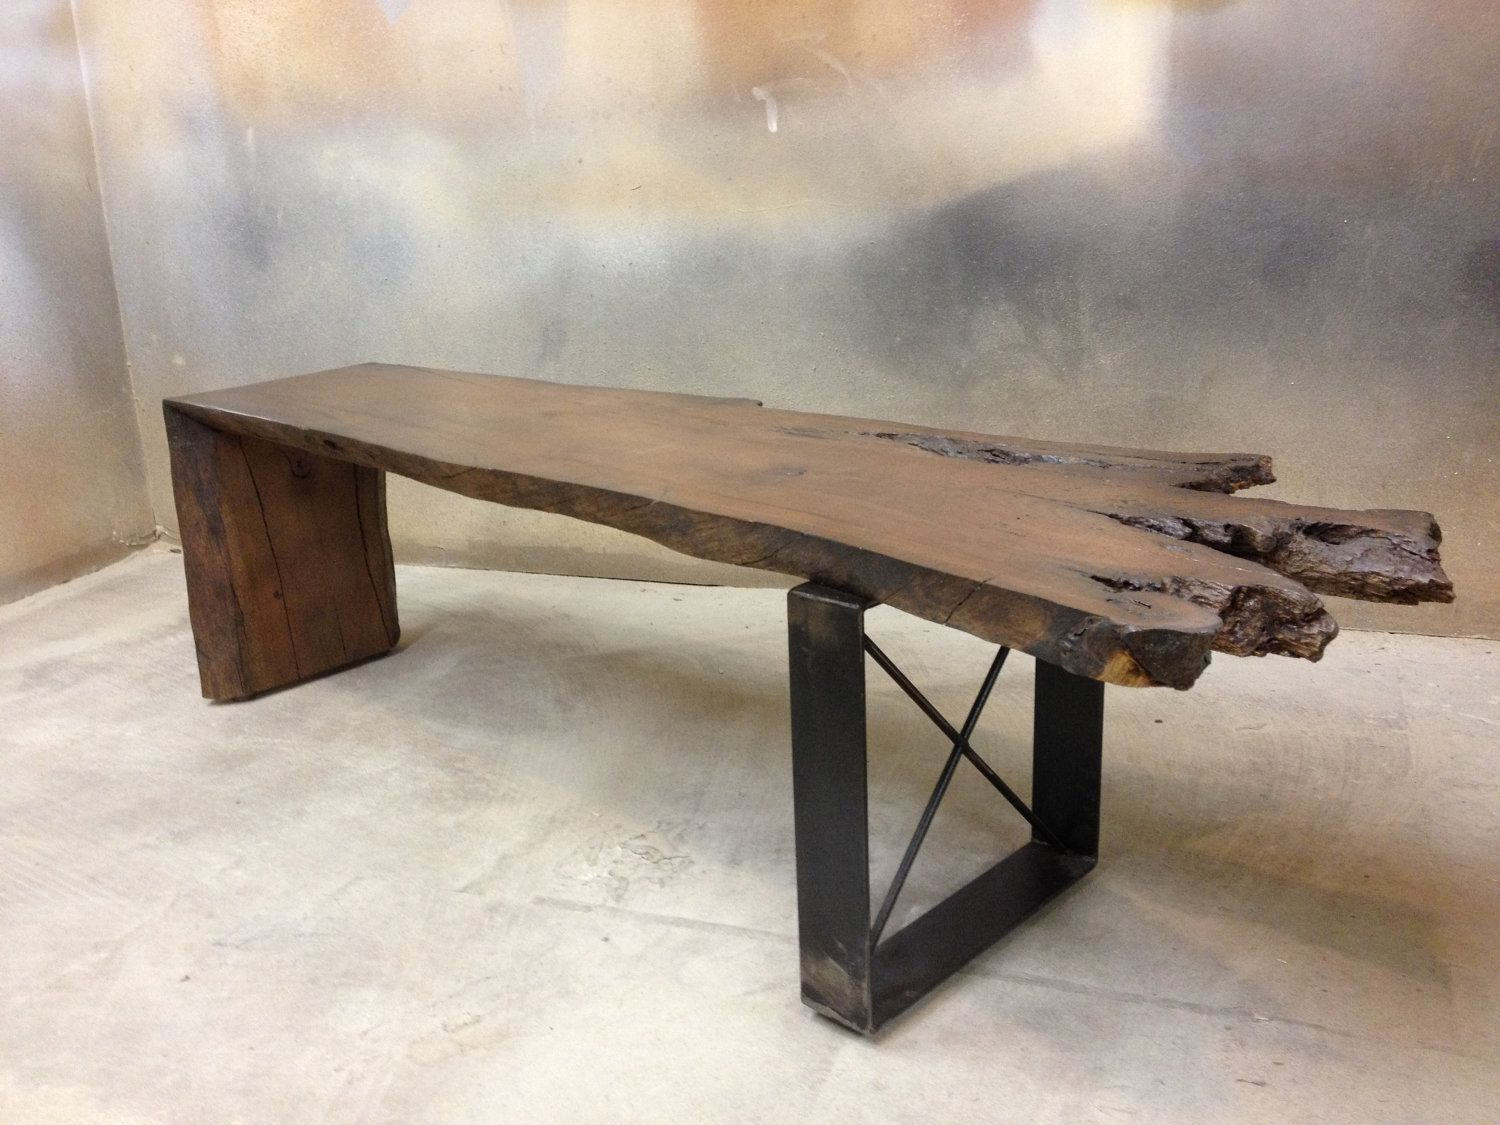 Modern Rustic Bench Handcrafted From Wood And Metal